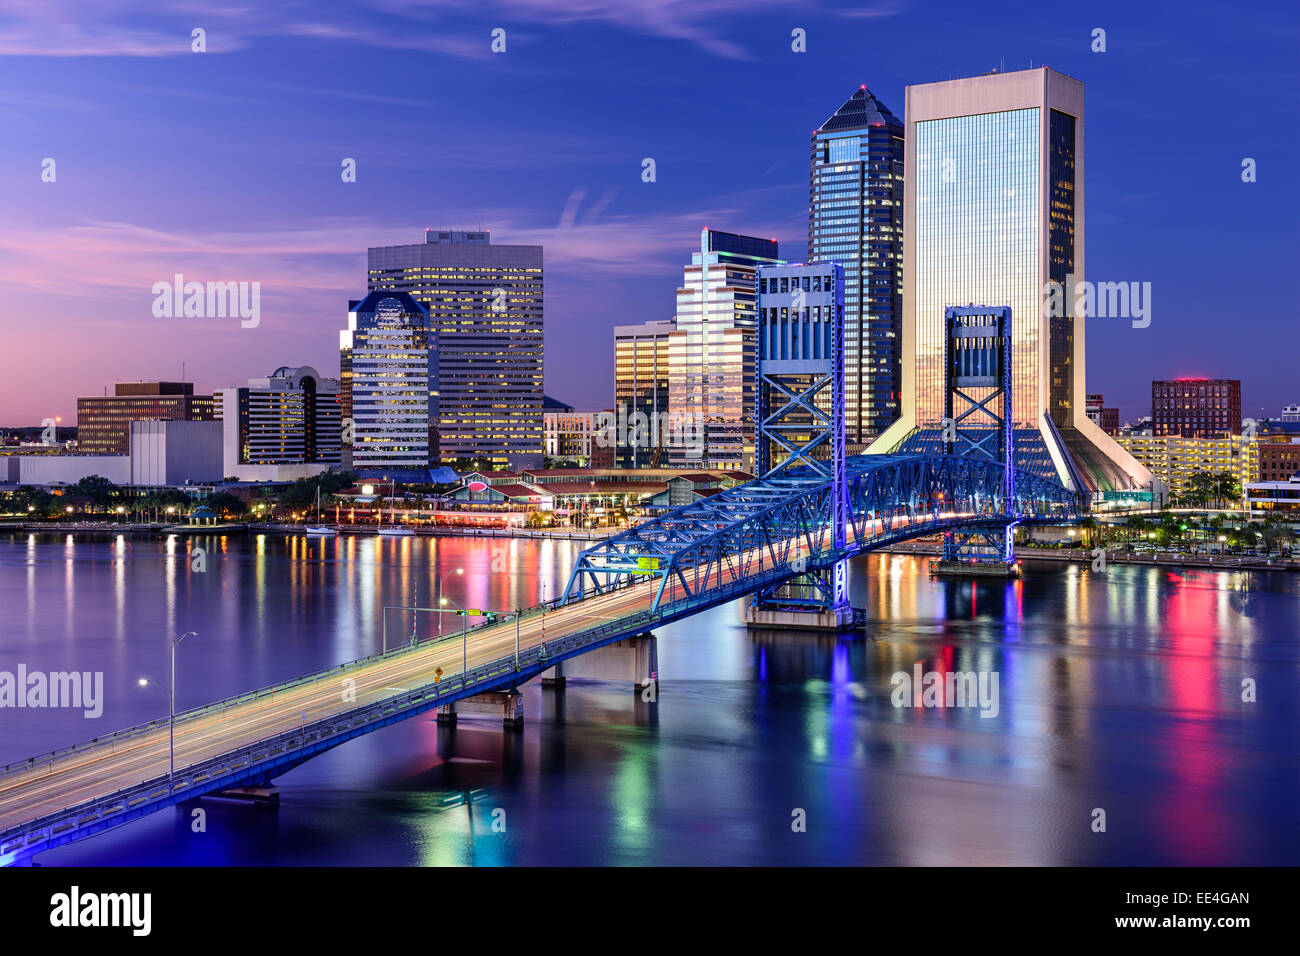 Jacksonville, Florida, USA city skyline on St. Johns River. - Stock Image